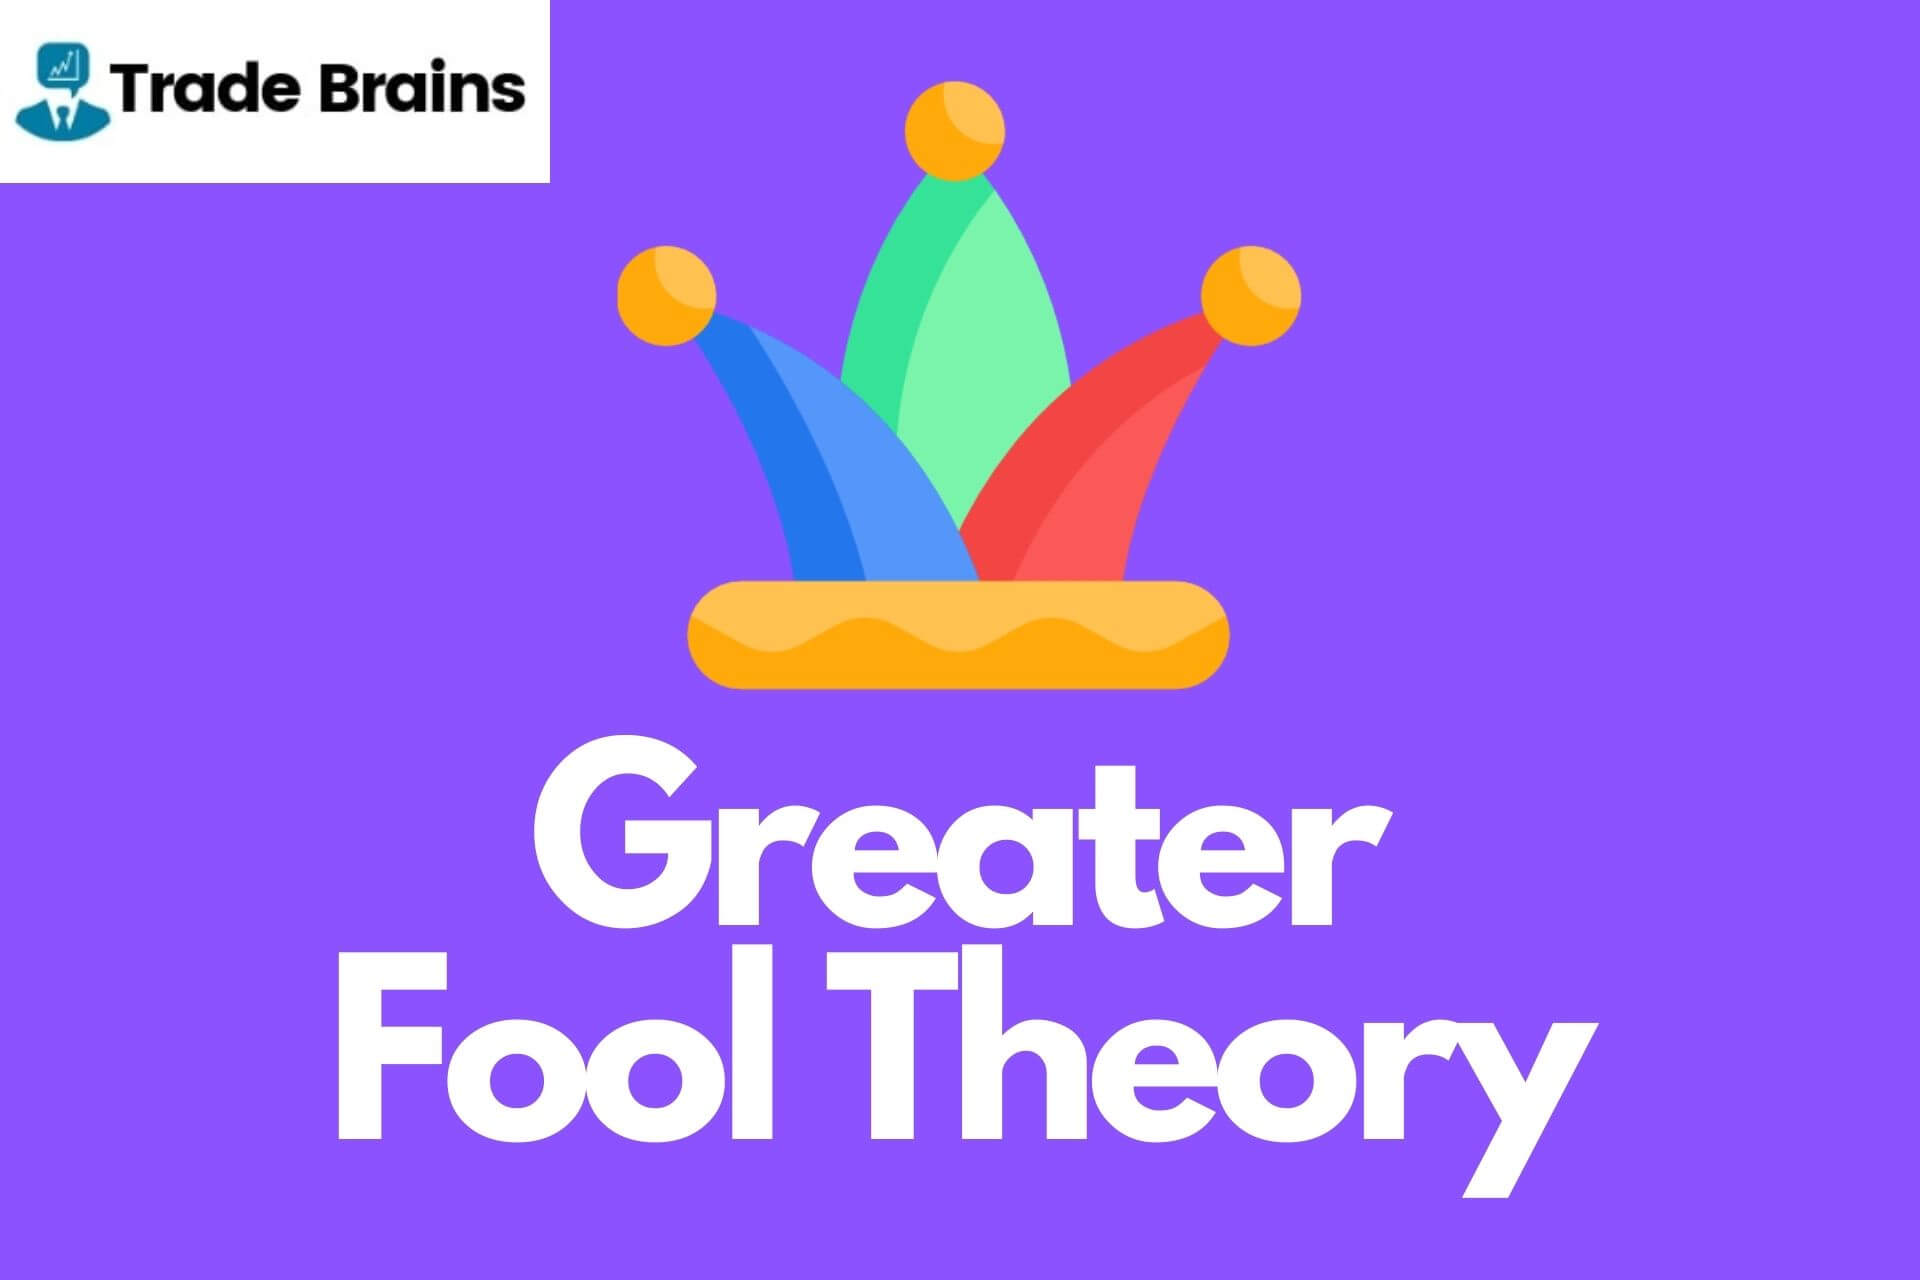 What is Greater Fool Theory? And How to Avoid being a Greater Fool?